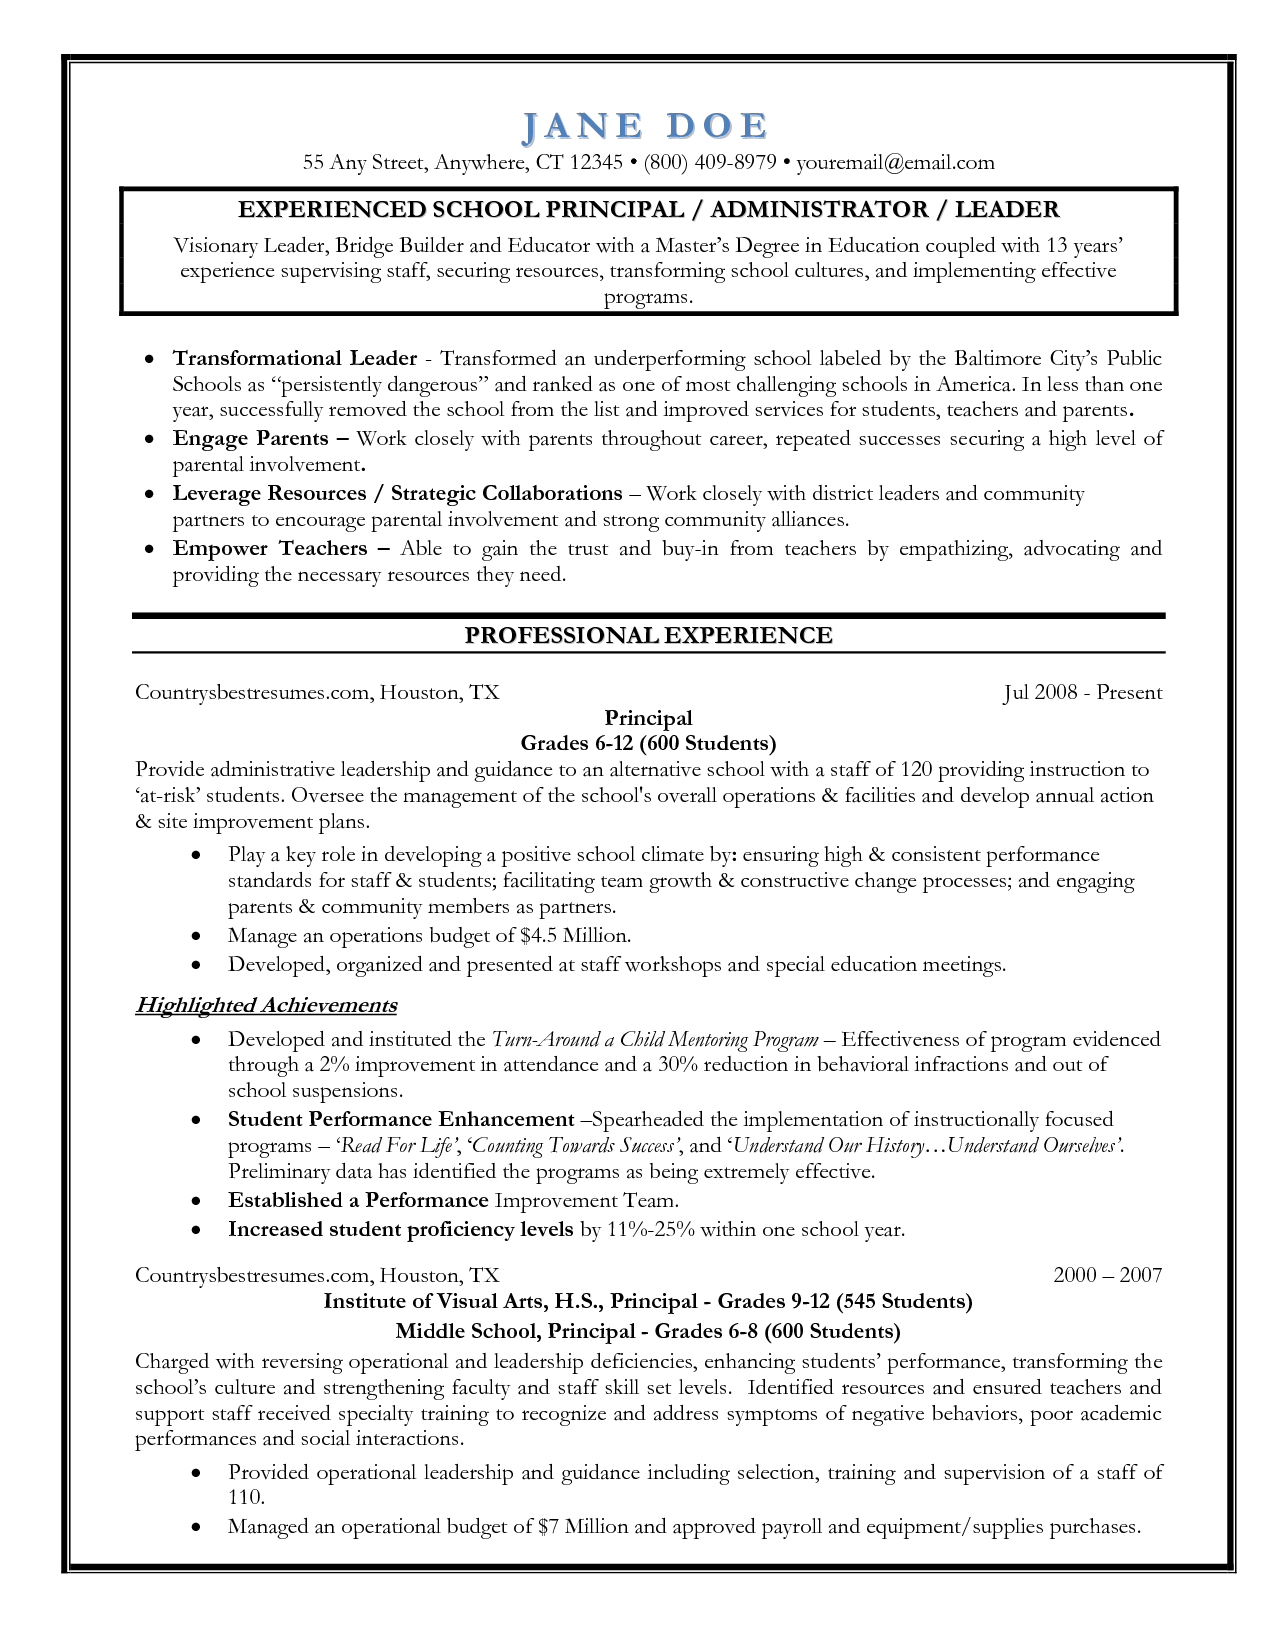 Education Resume Template Entrylevel Assistant Principal Resume Templates  Senior Educator